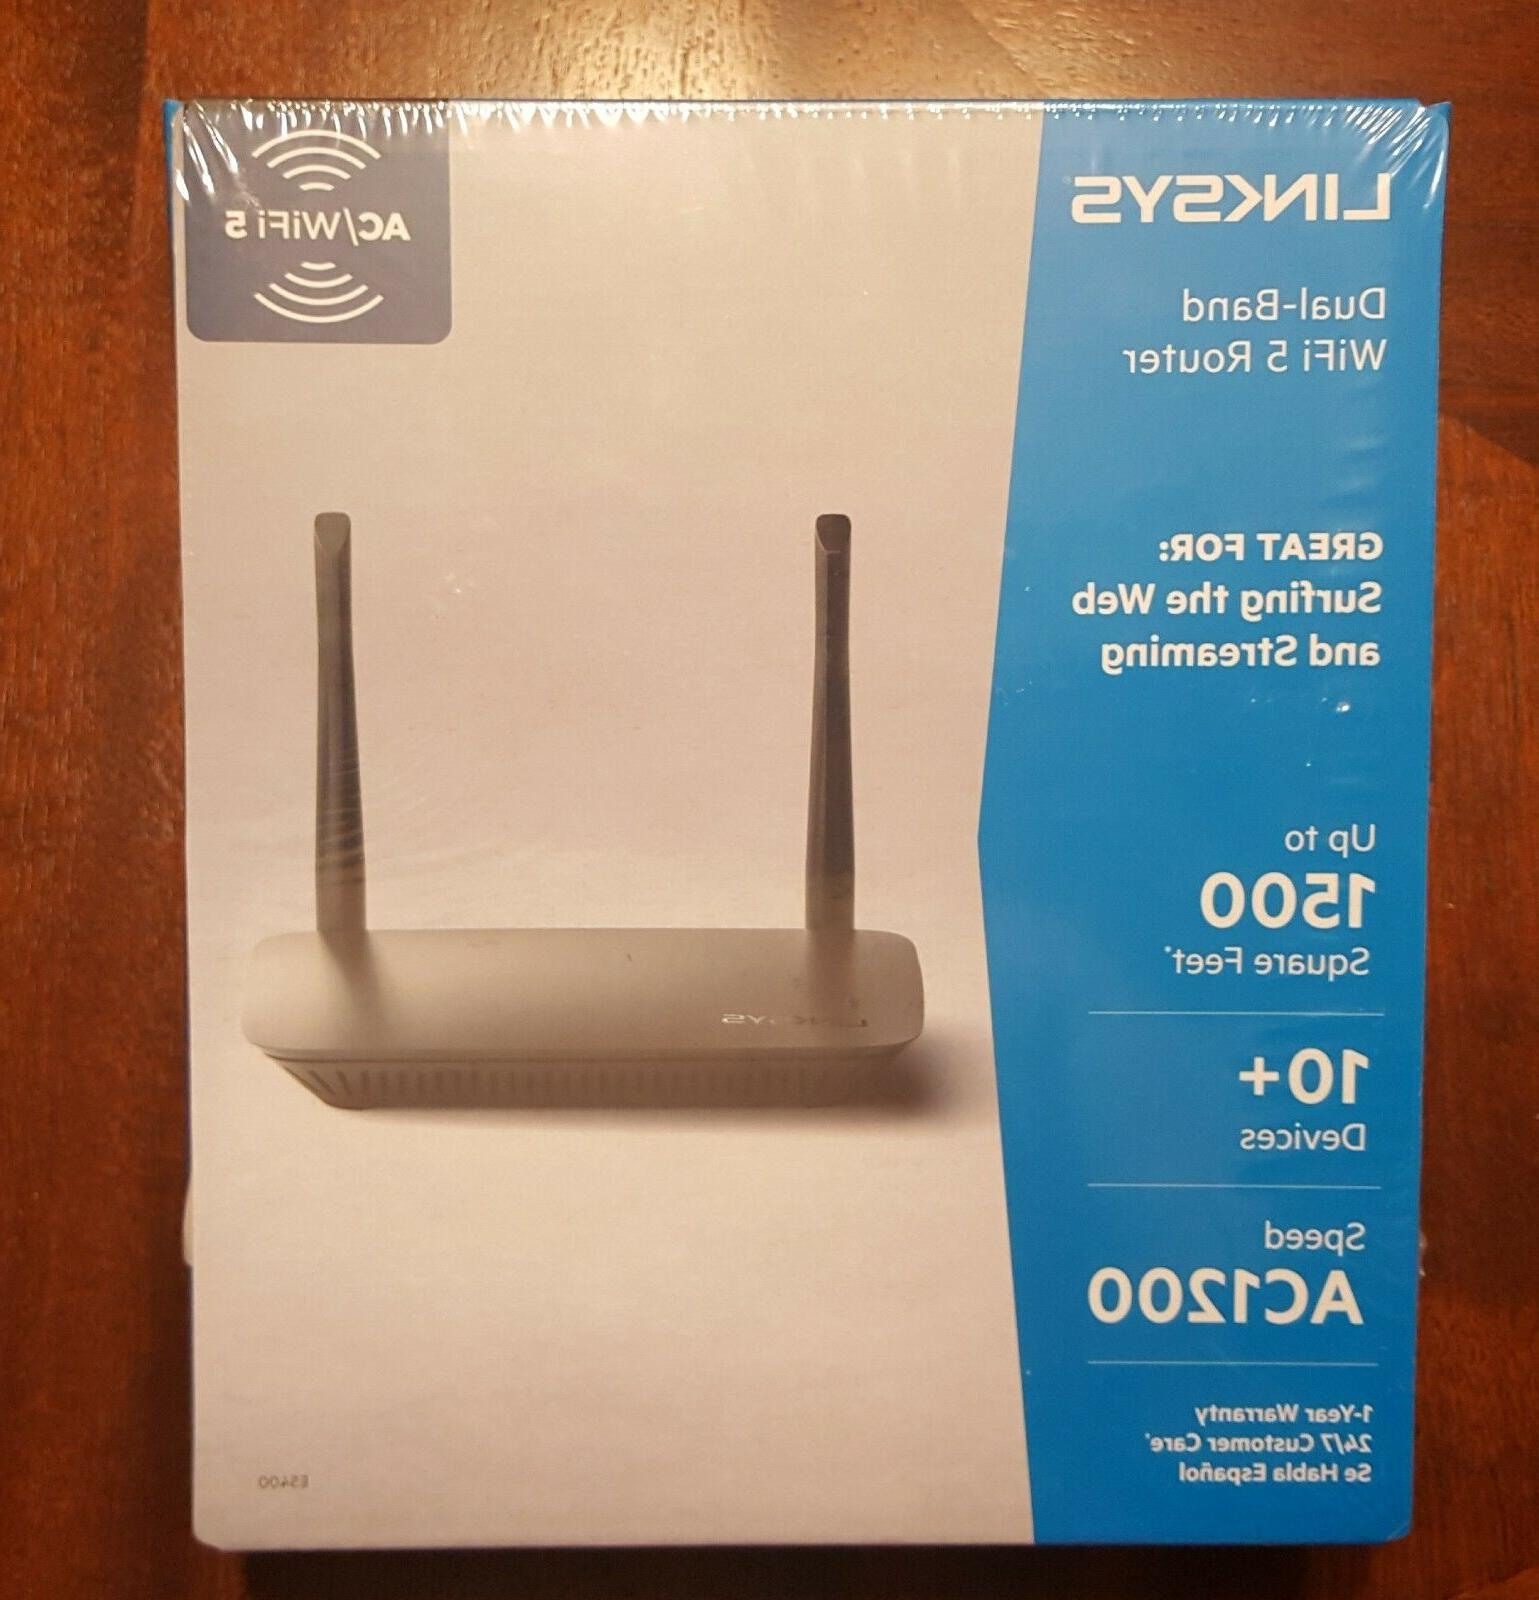 new sealed e5400 ac1200 dual band router